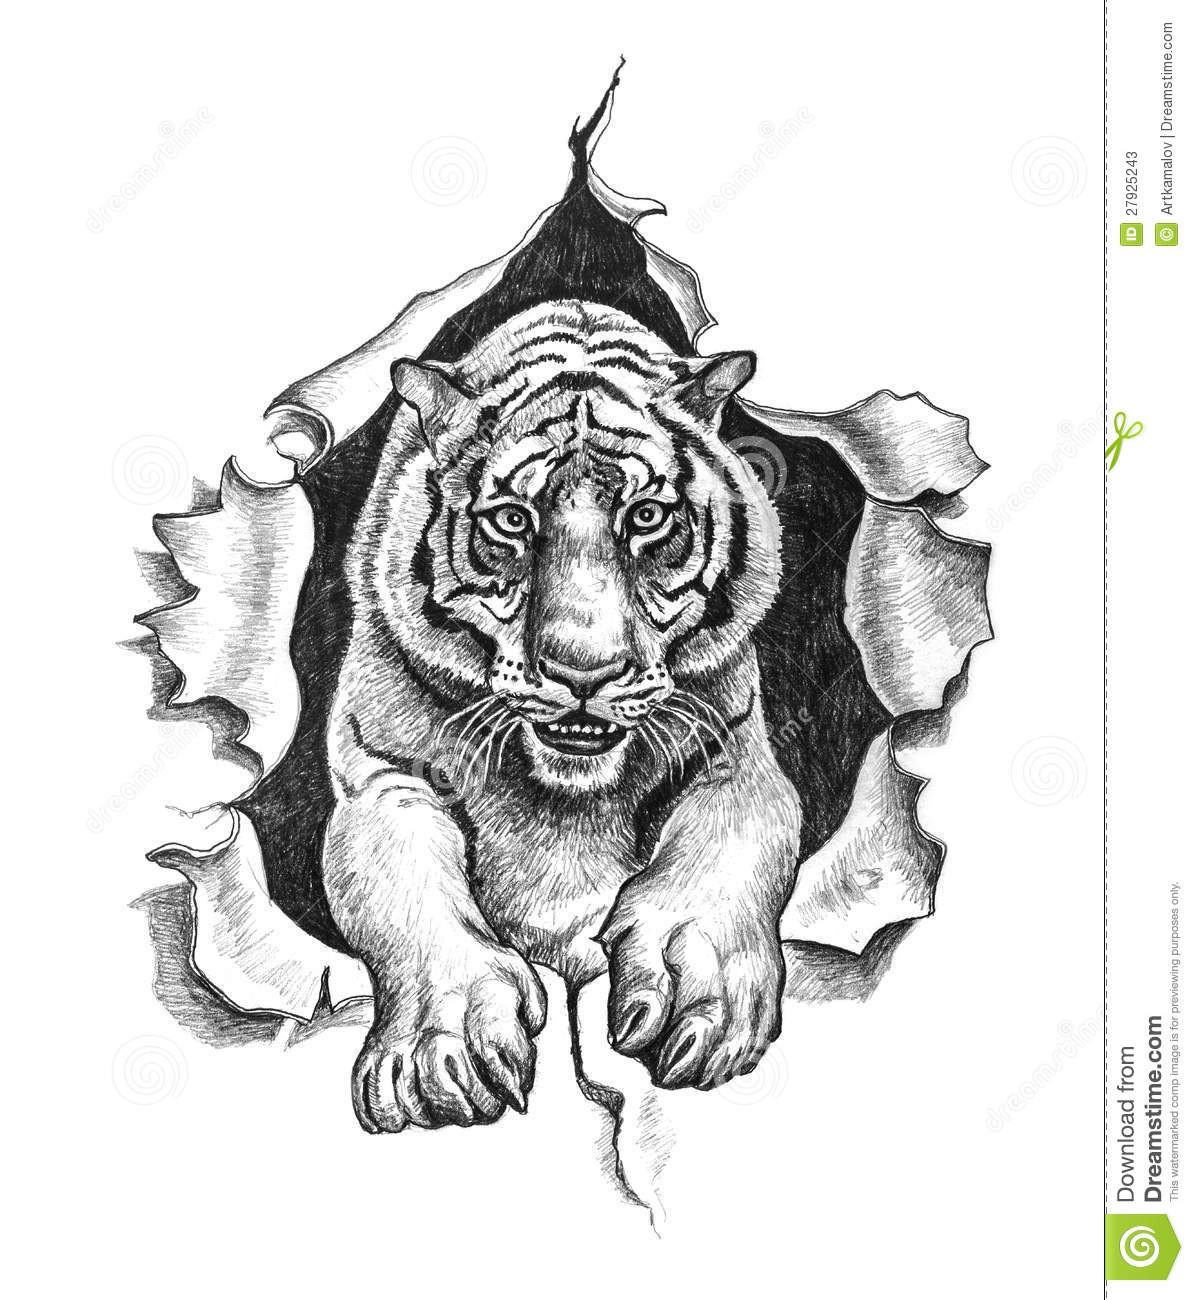 Pencil Drawing Of A Tiger Stock Photos - Image: 27925243